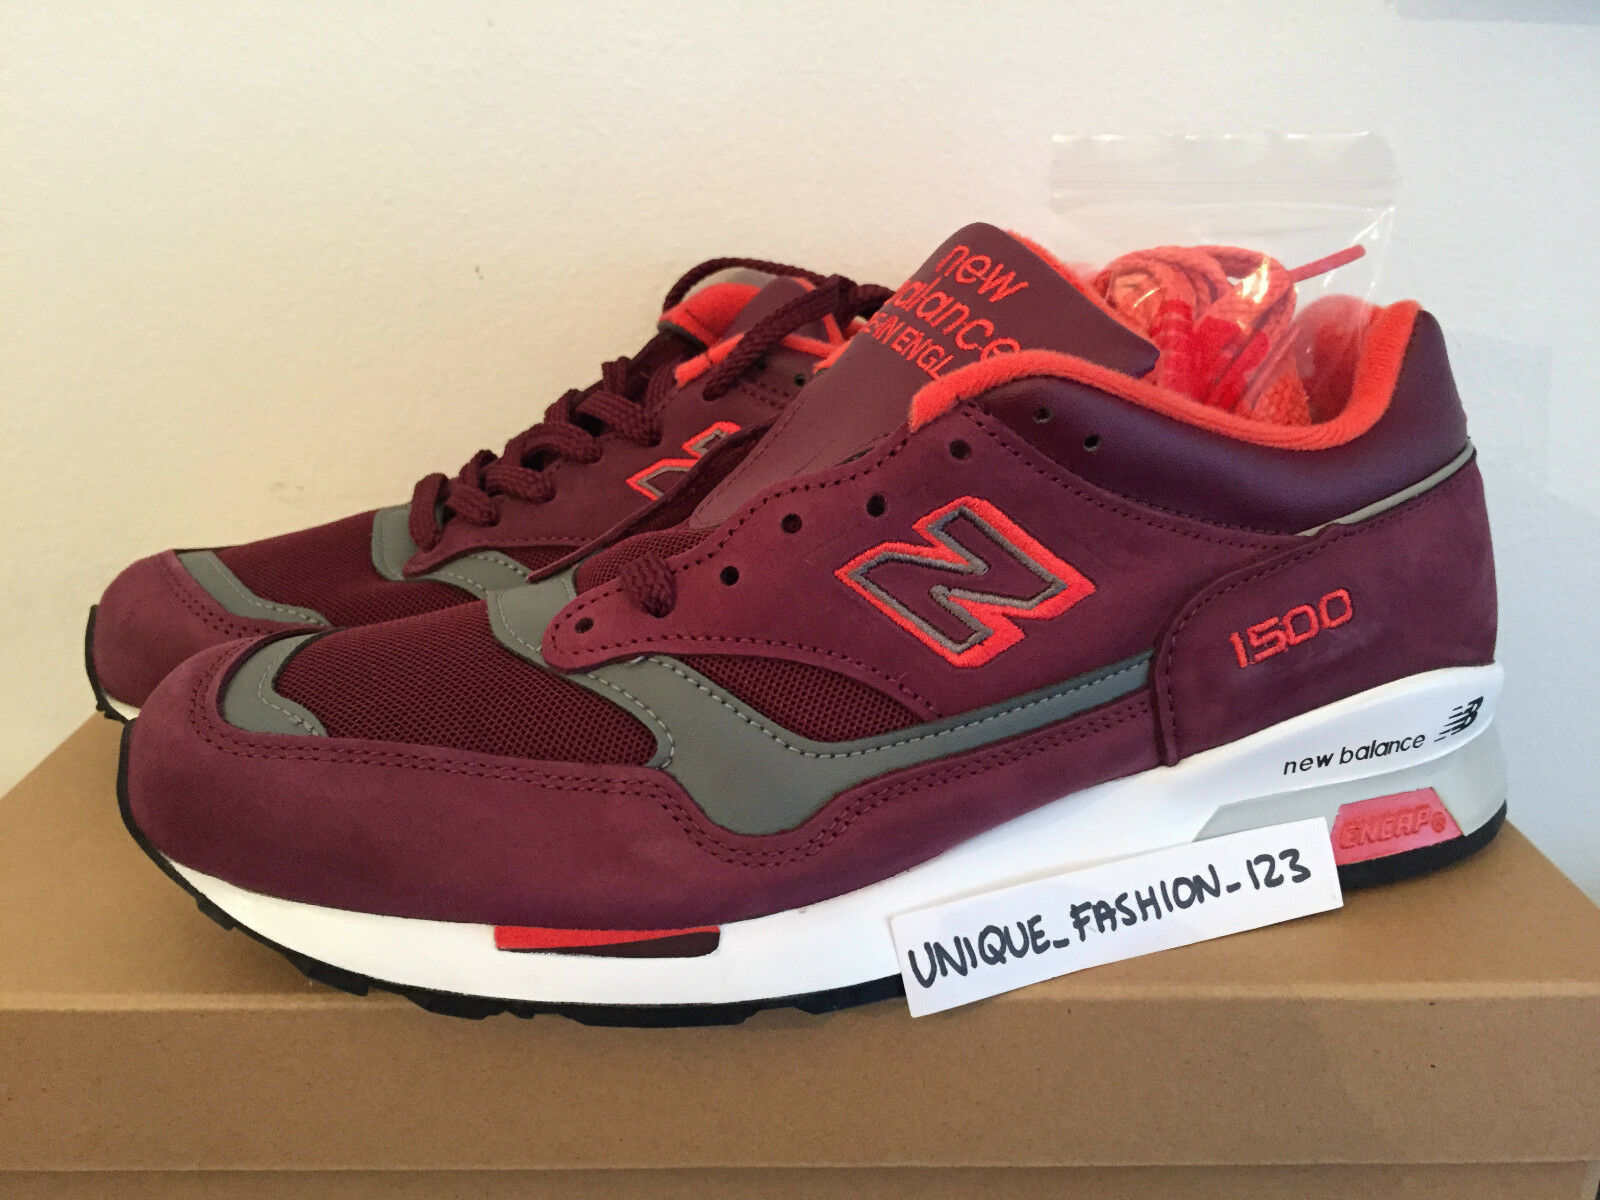 NEW BALANCE 2018 BRG US 7.57 40.5 MADE IN ENGLAND MAROON NEON Rouge BURGUNDY